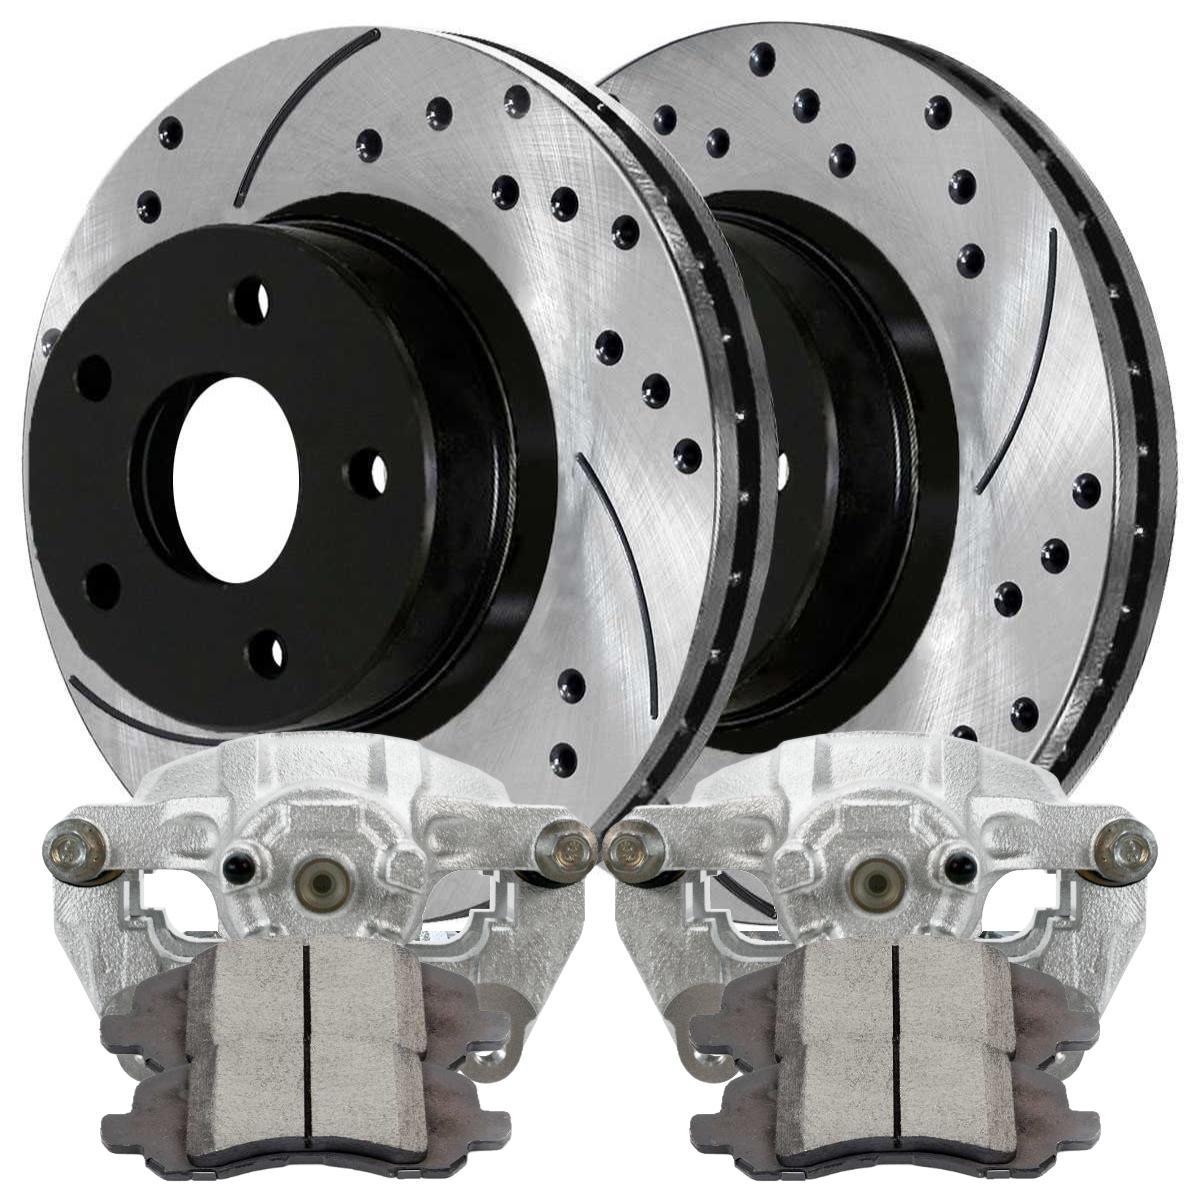 Performance Brake Pads and Performance Rotors Prime Choice Auto Parts BRKPKG651 Front Set of Brake Calipers